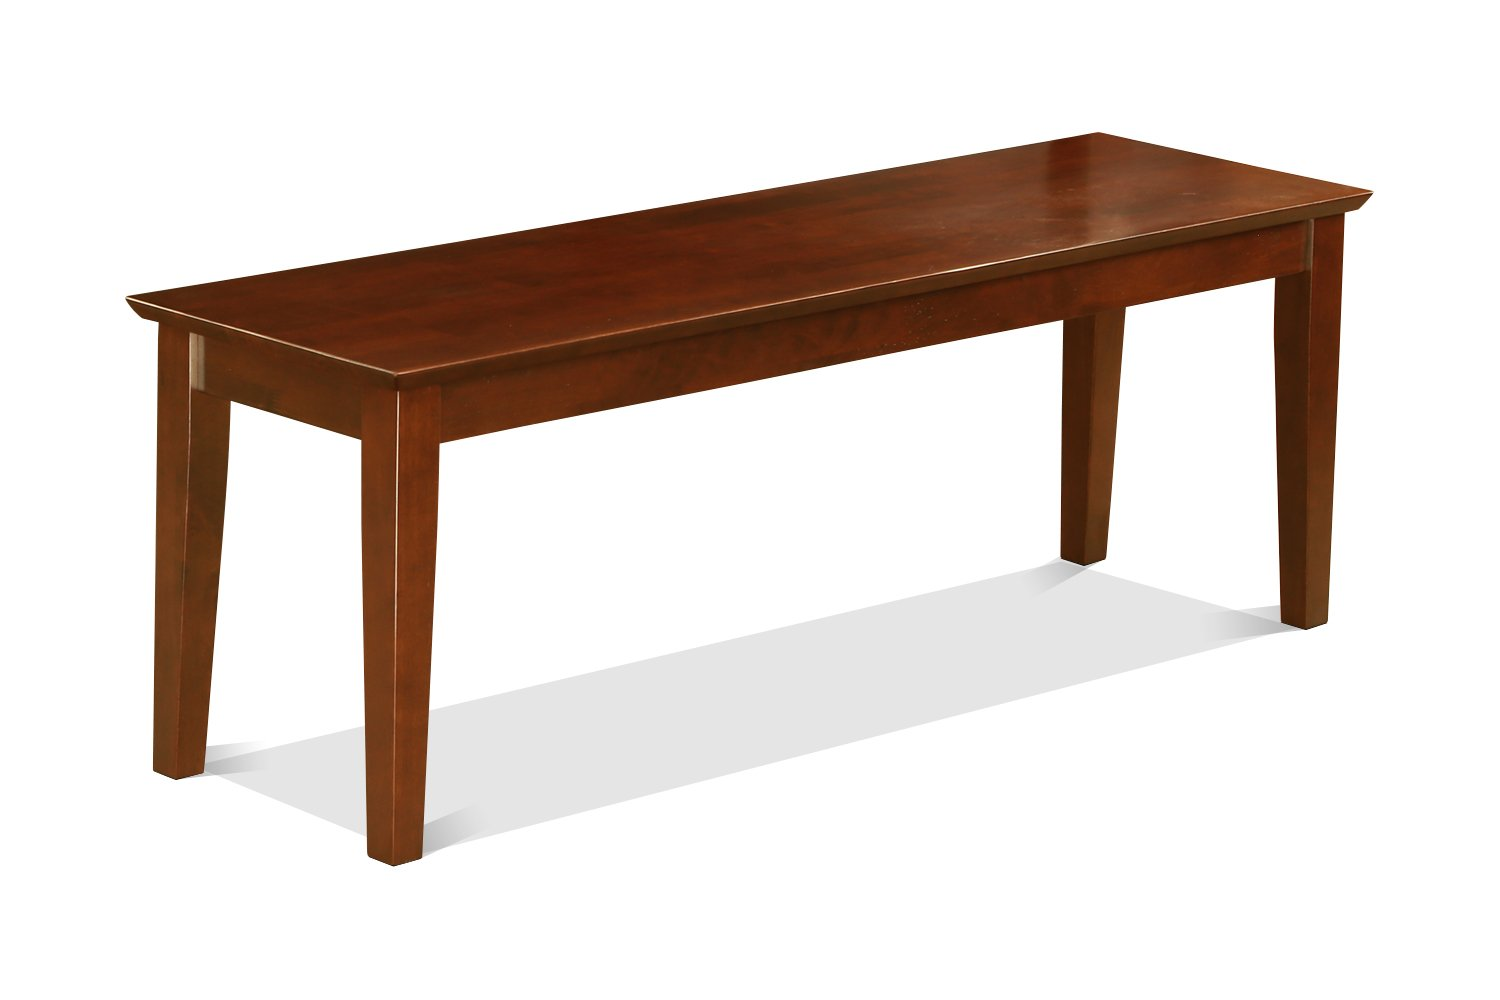 East West Furniture CAB-MAH-W Bench with Wood Seat, Mahogany Finish by East West Furniture (Image #1)